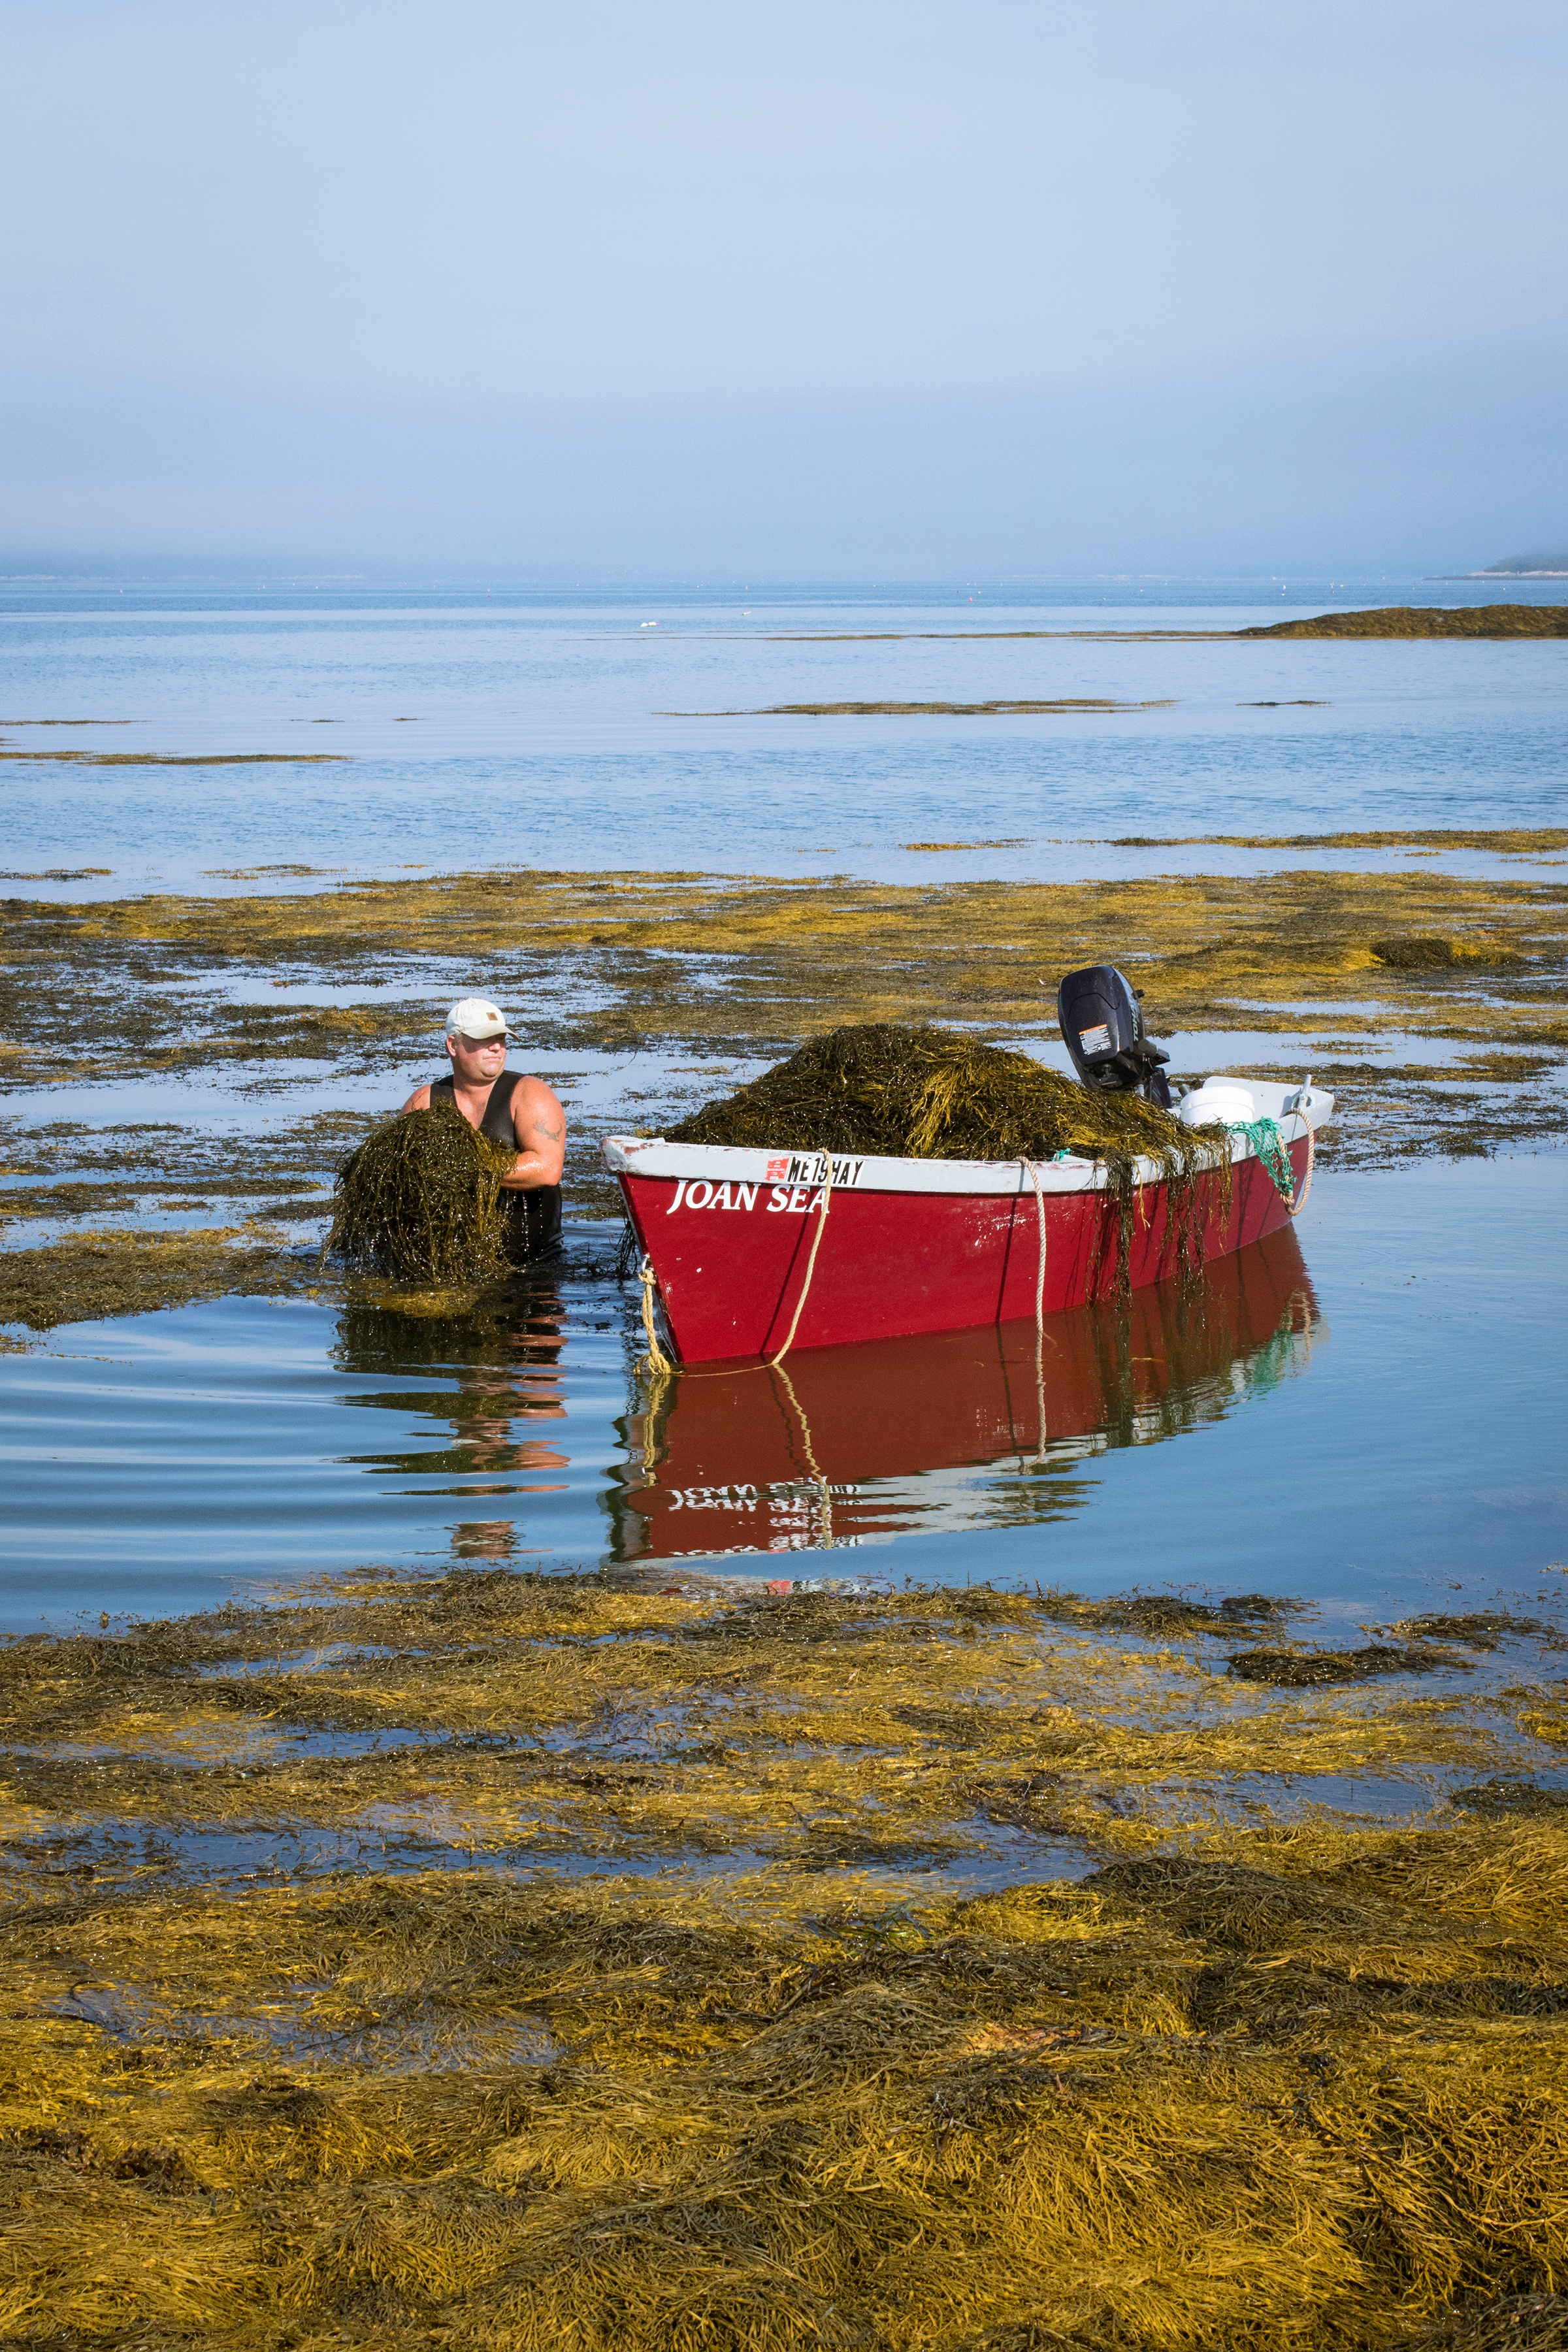 Seaweed harvester out in the water hauling seaweed onto boat